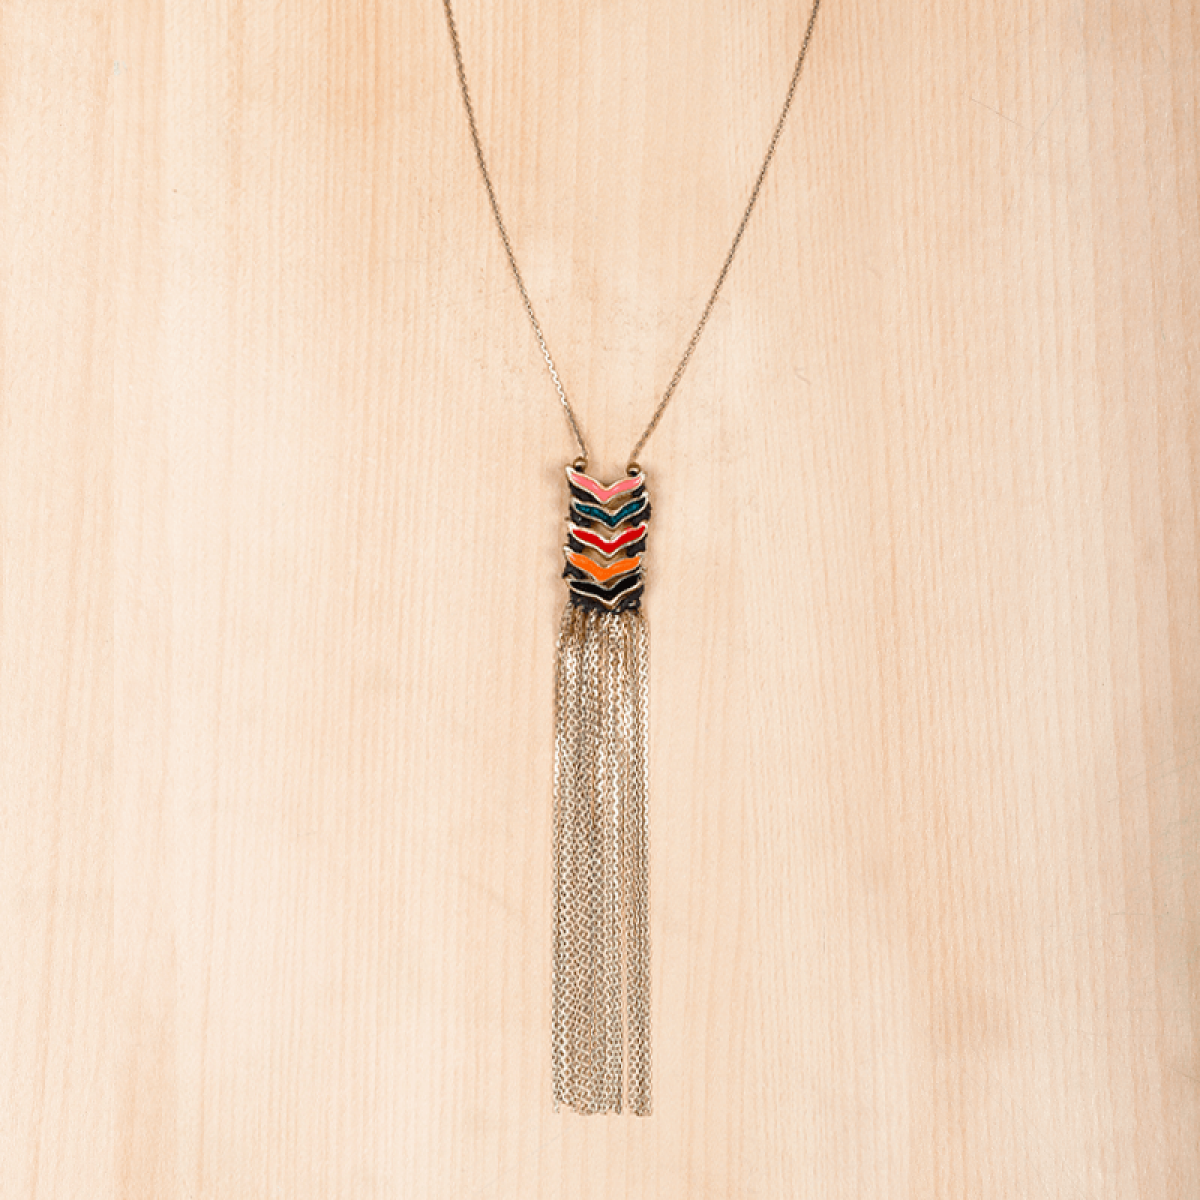 Long metal string pendant necklace